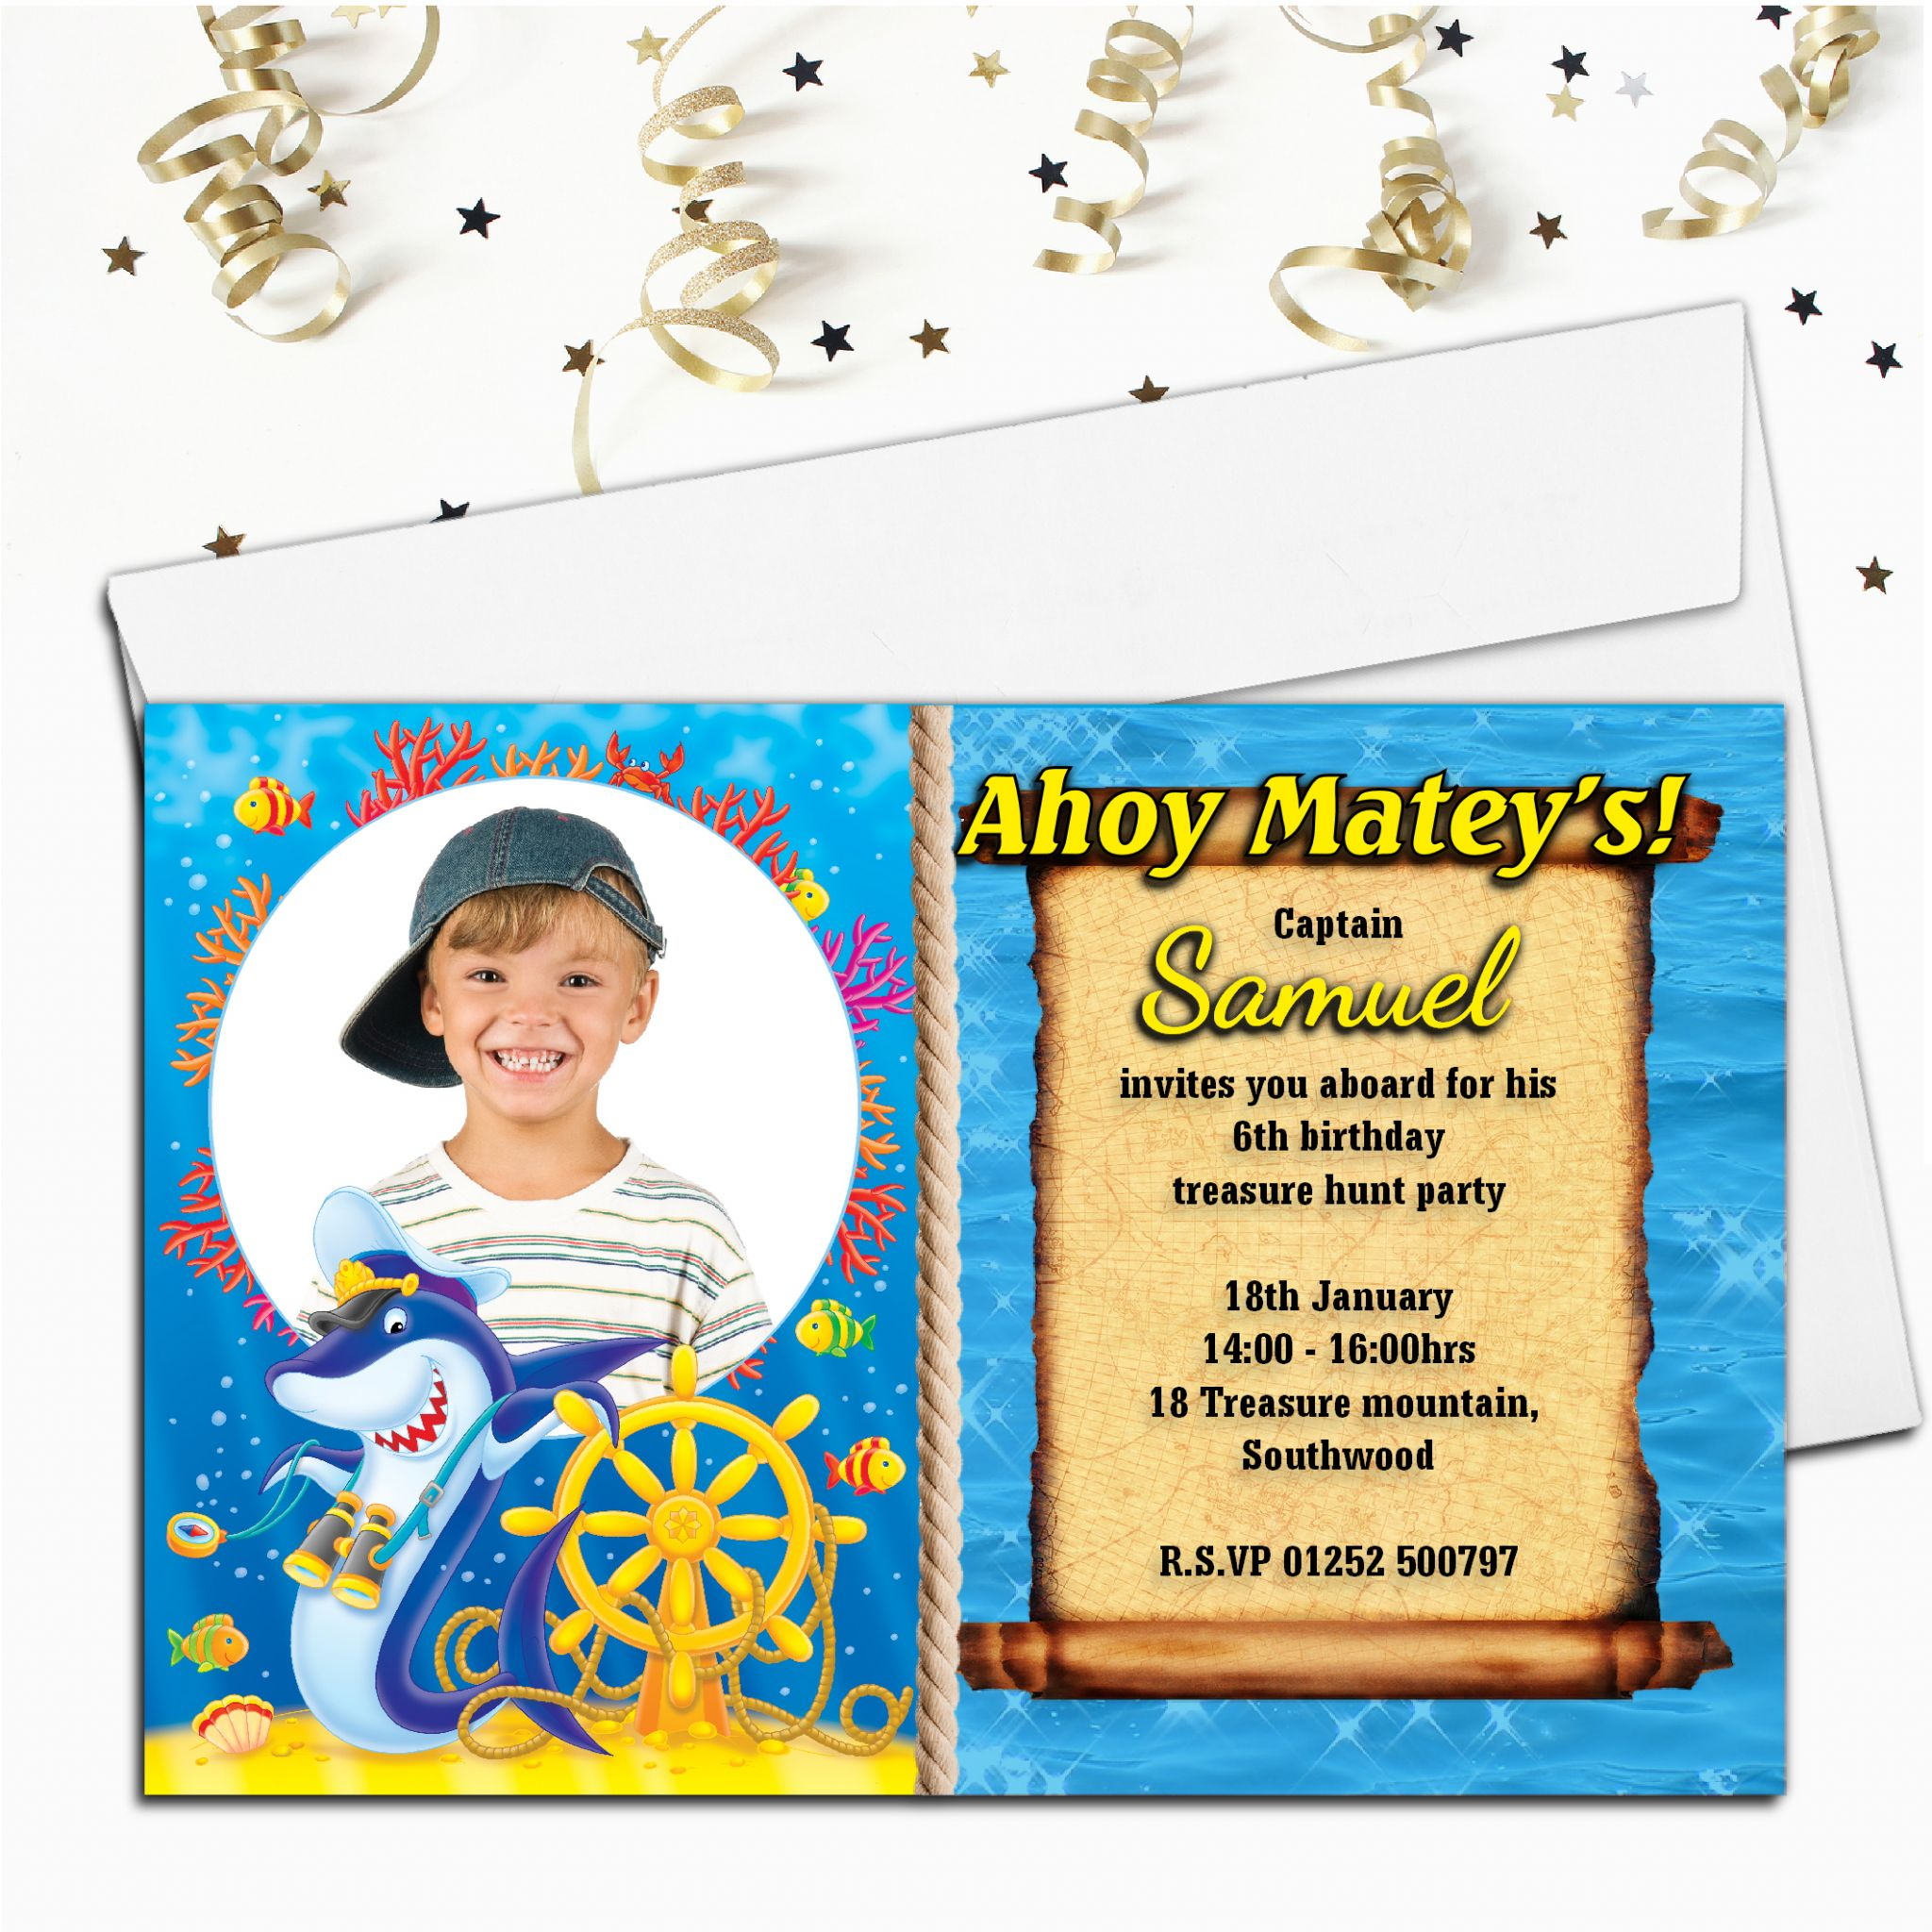 celebrations occasions 10 personalised kids pirate birthday party invitations new designs home furniture diy itkart org